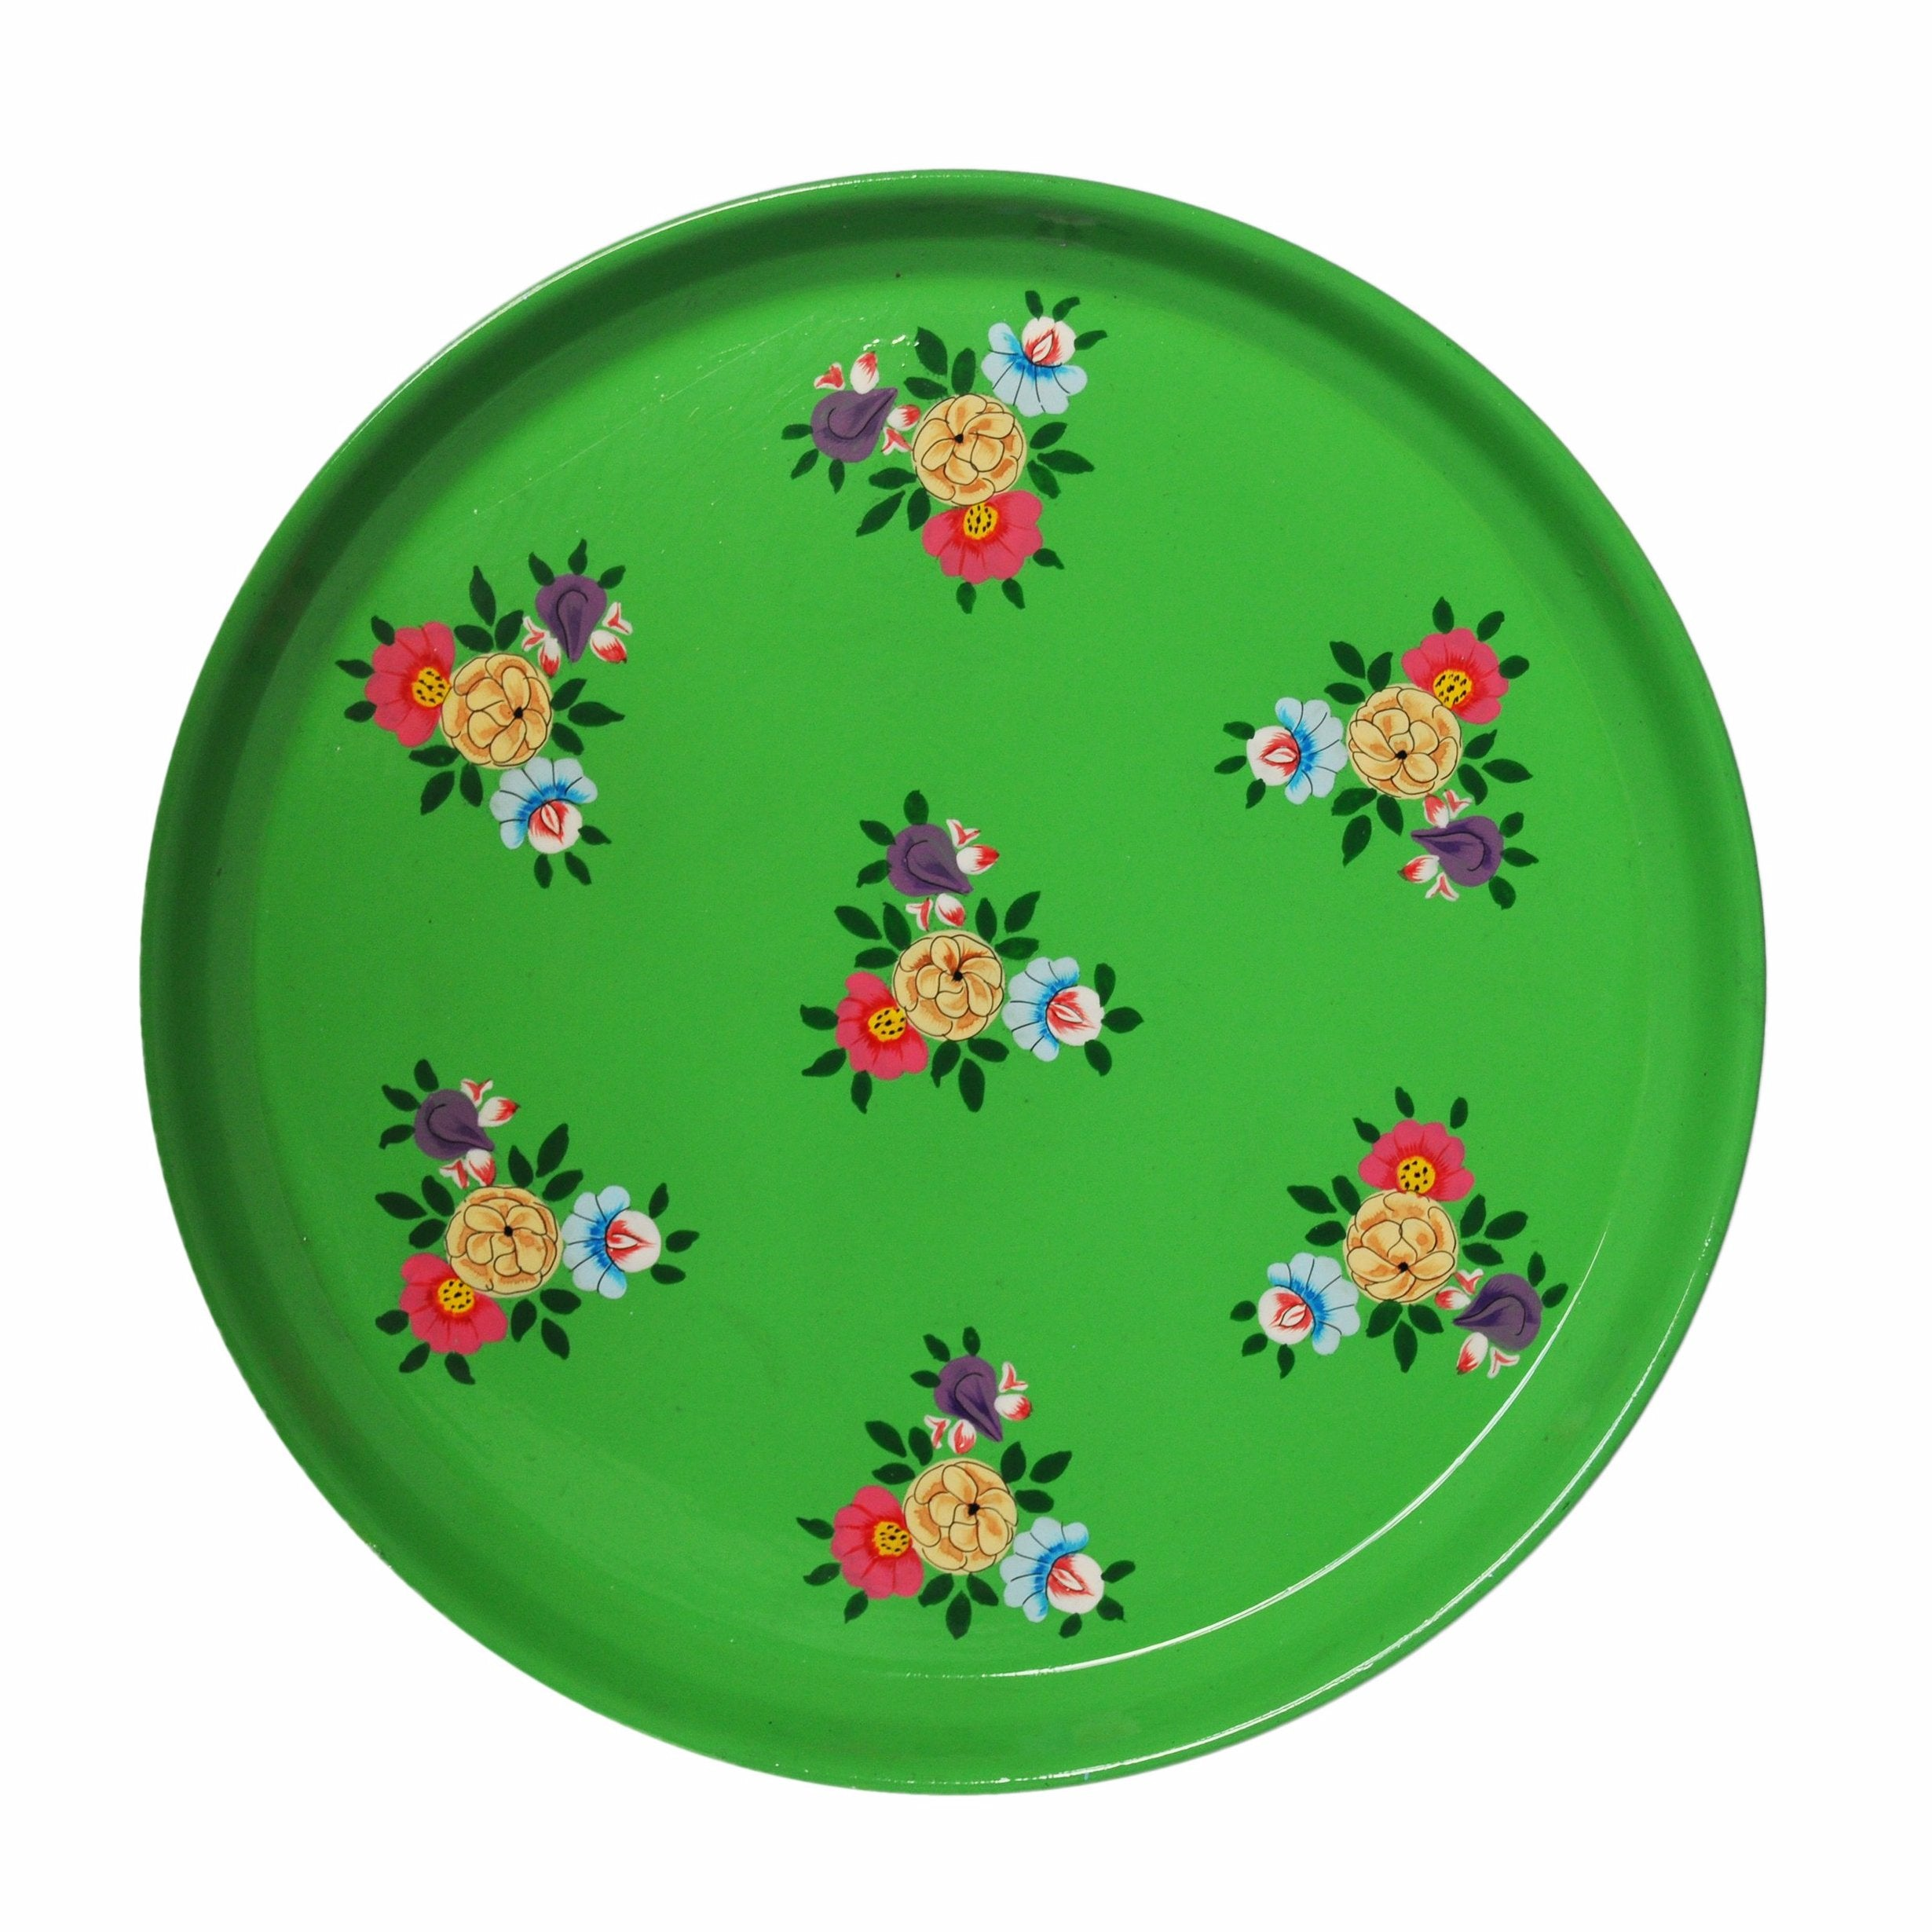 Bright Green Floral Enamelware Round Tray by Jasmine White on OOSTOR.com